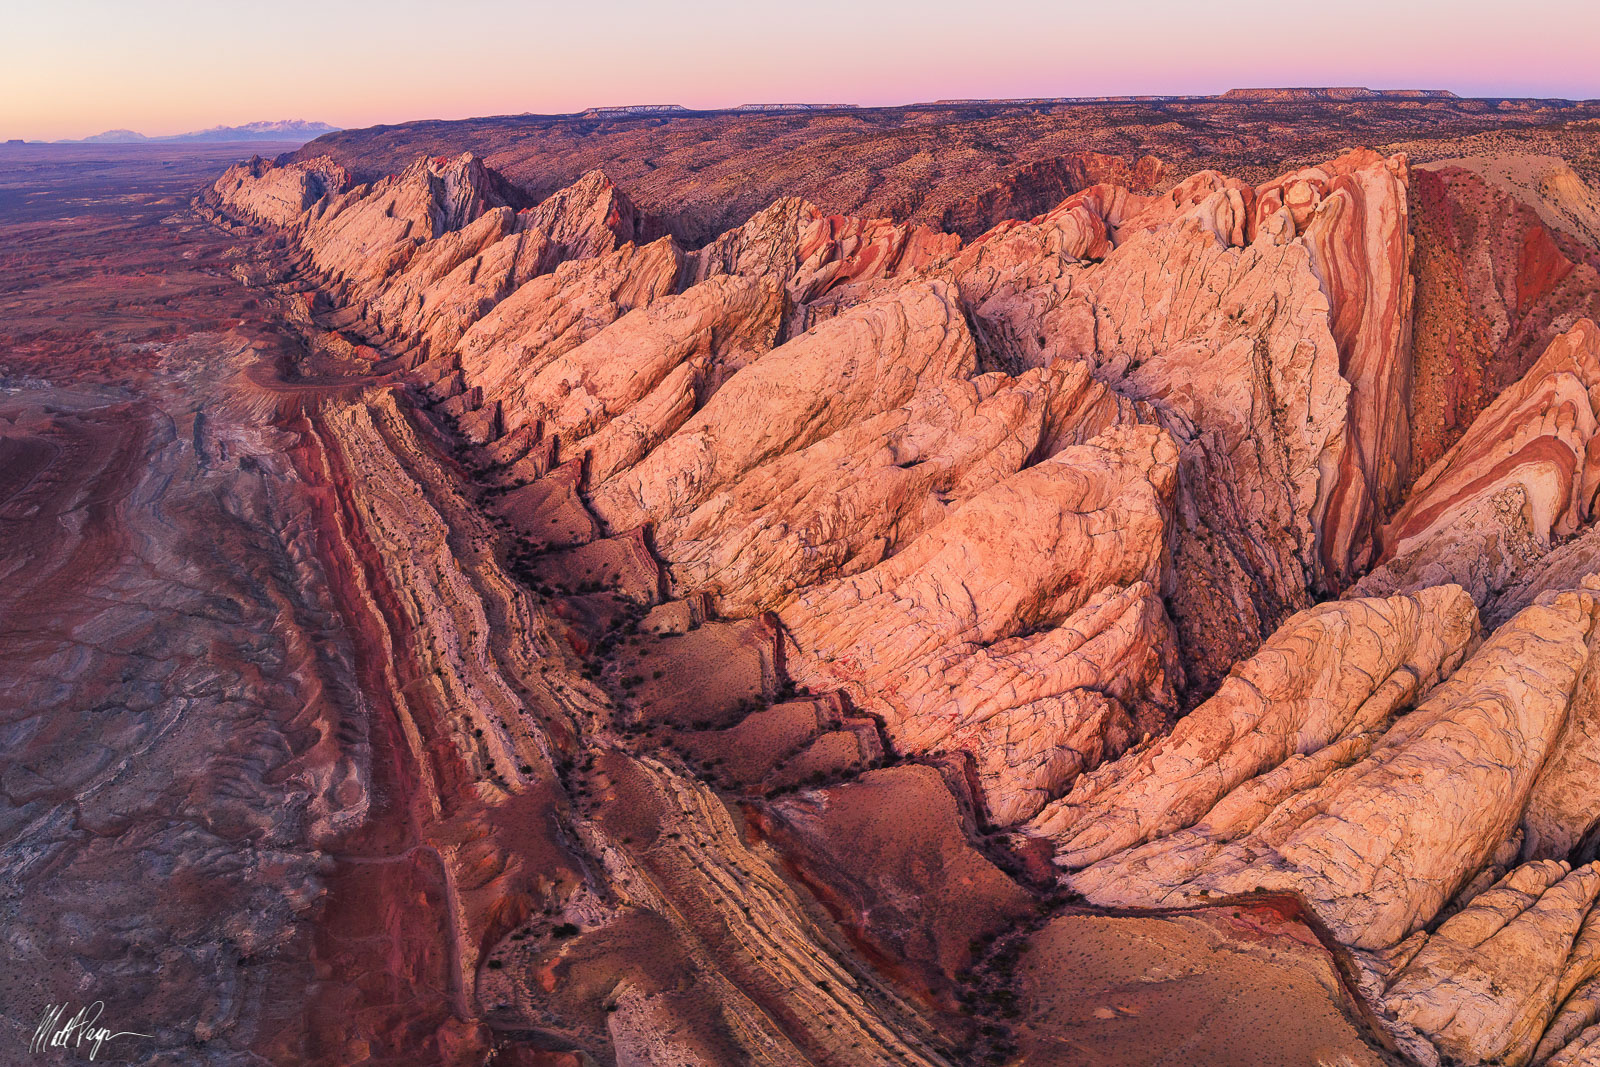 Geology has always fascinated me as a landscape photographer. One such geologic feature that really gets the creative and scientific...